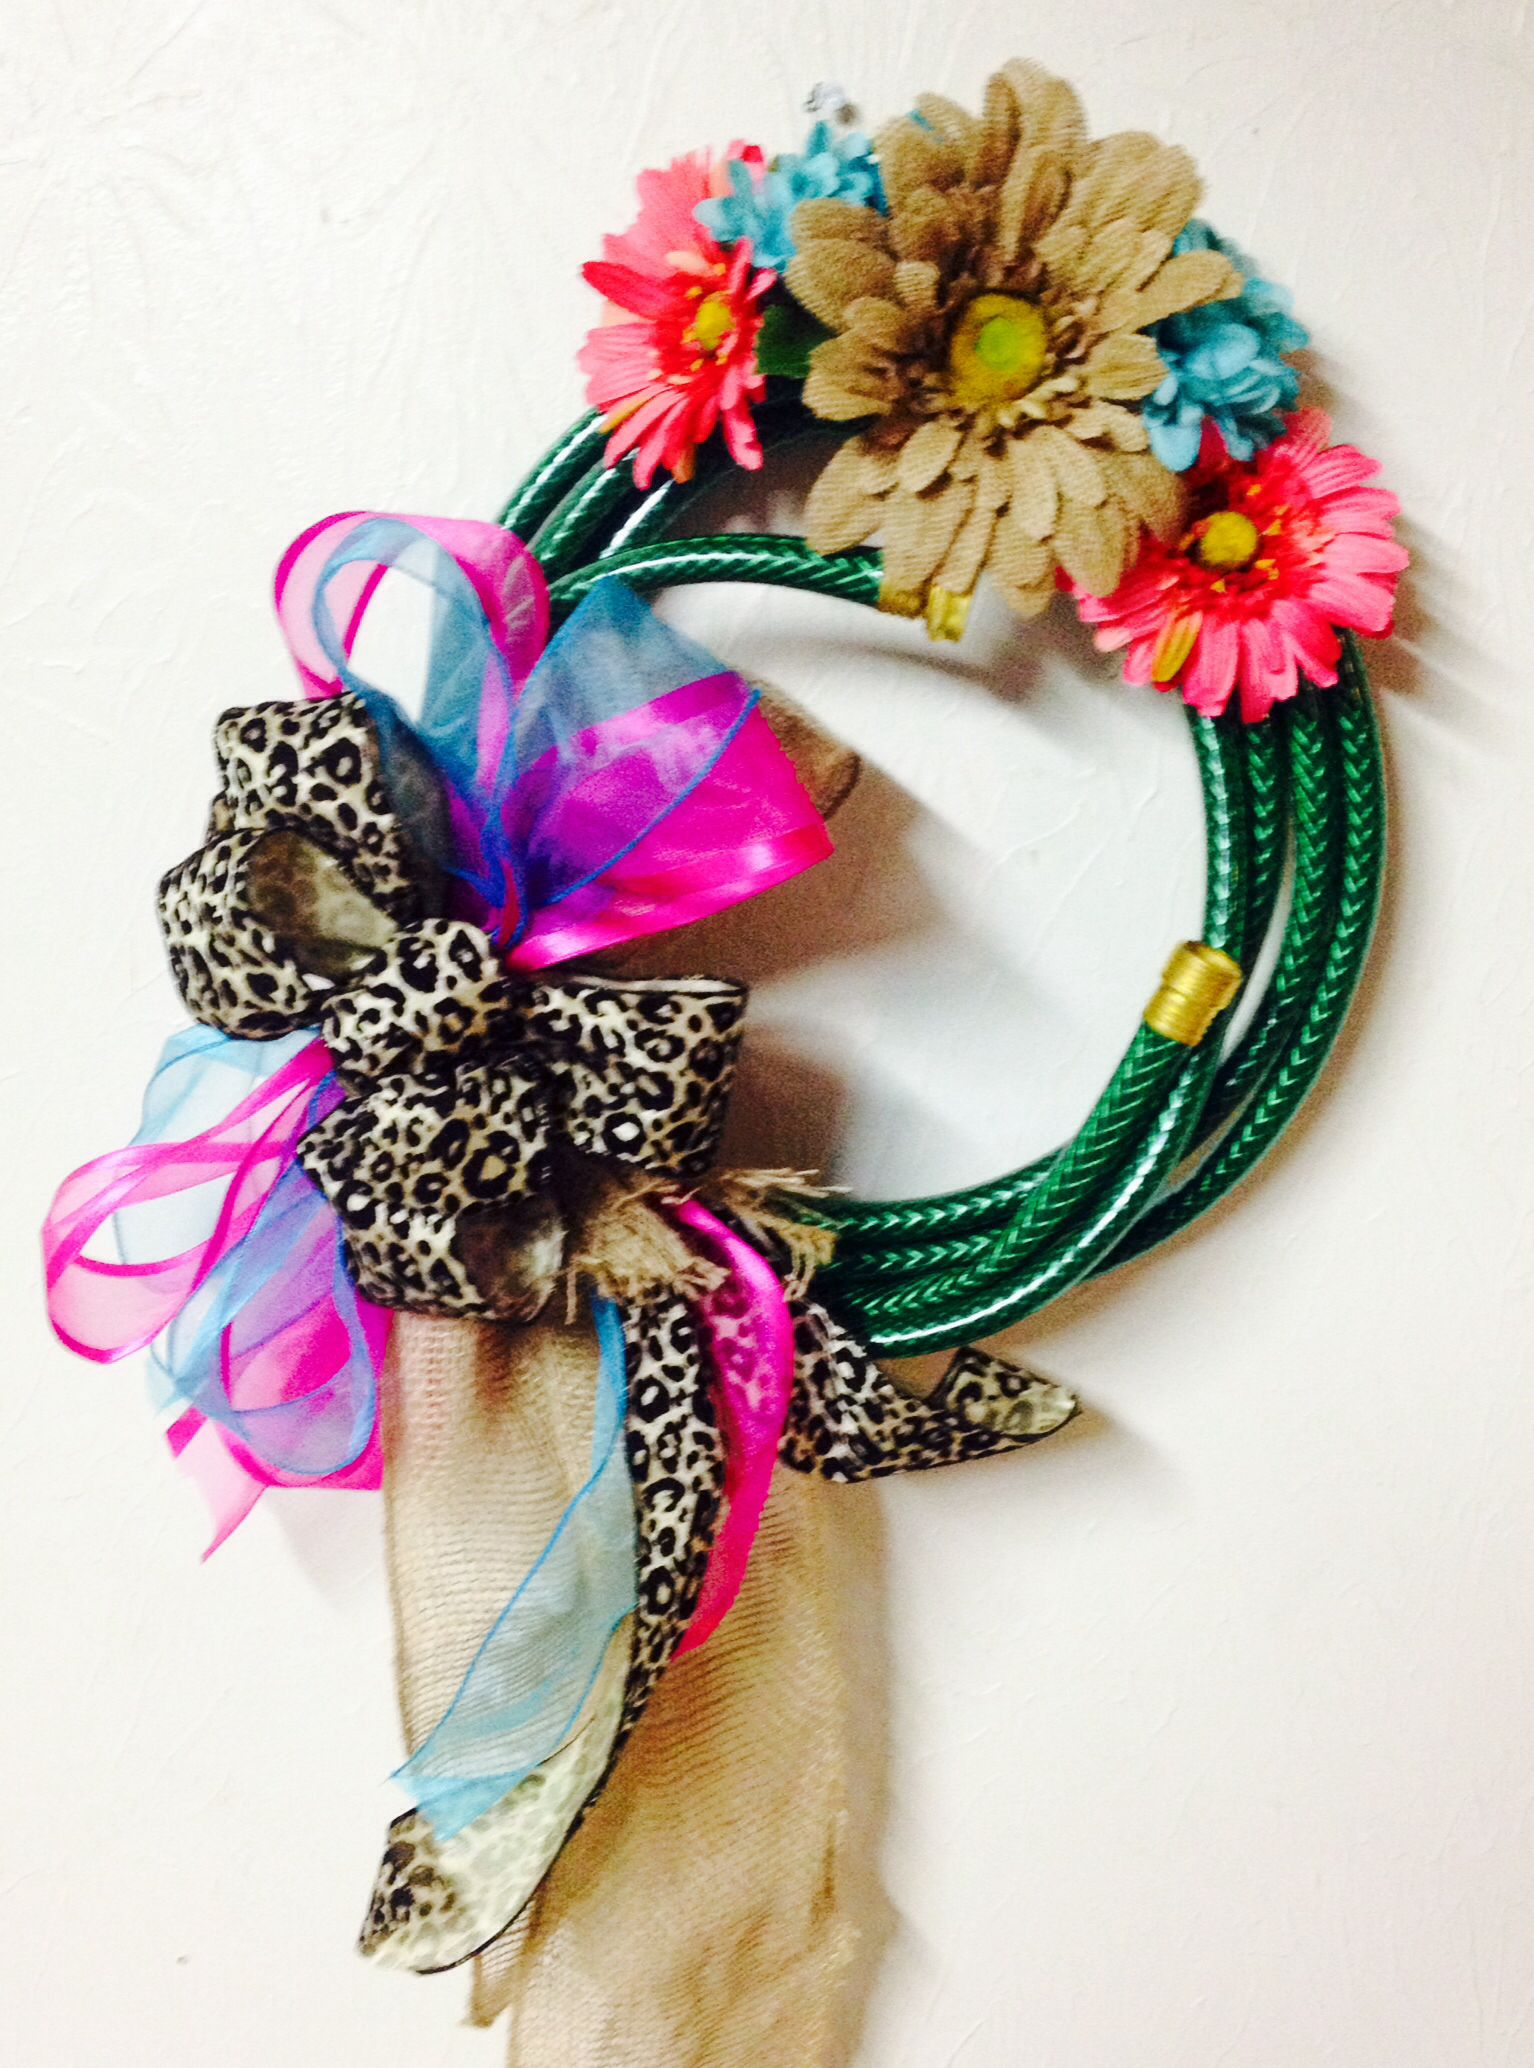 Water hose wreath for spring.